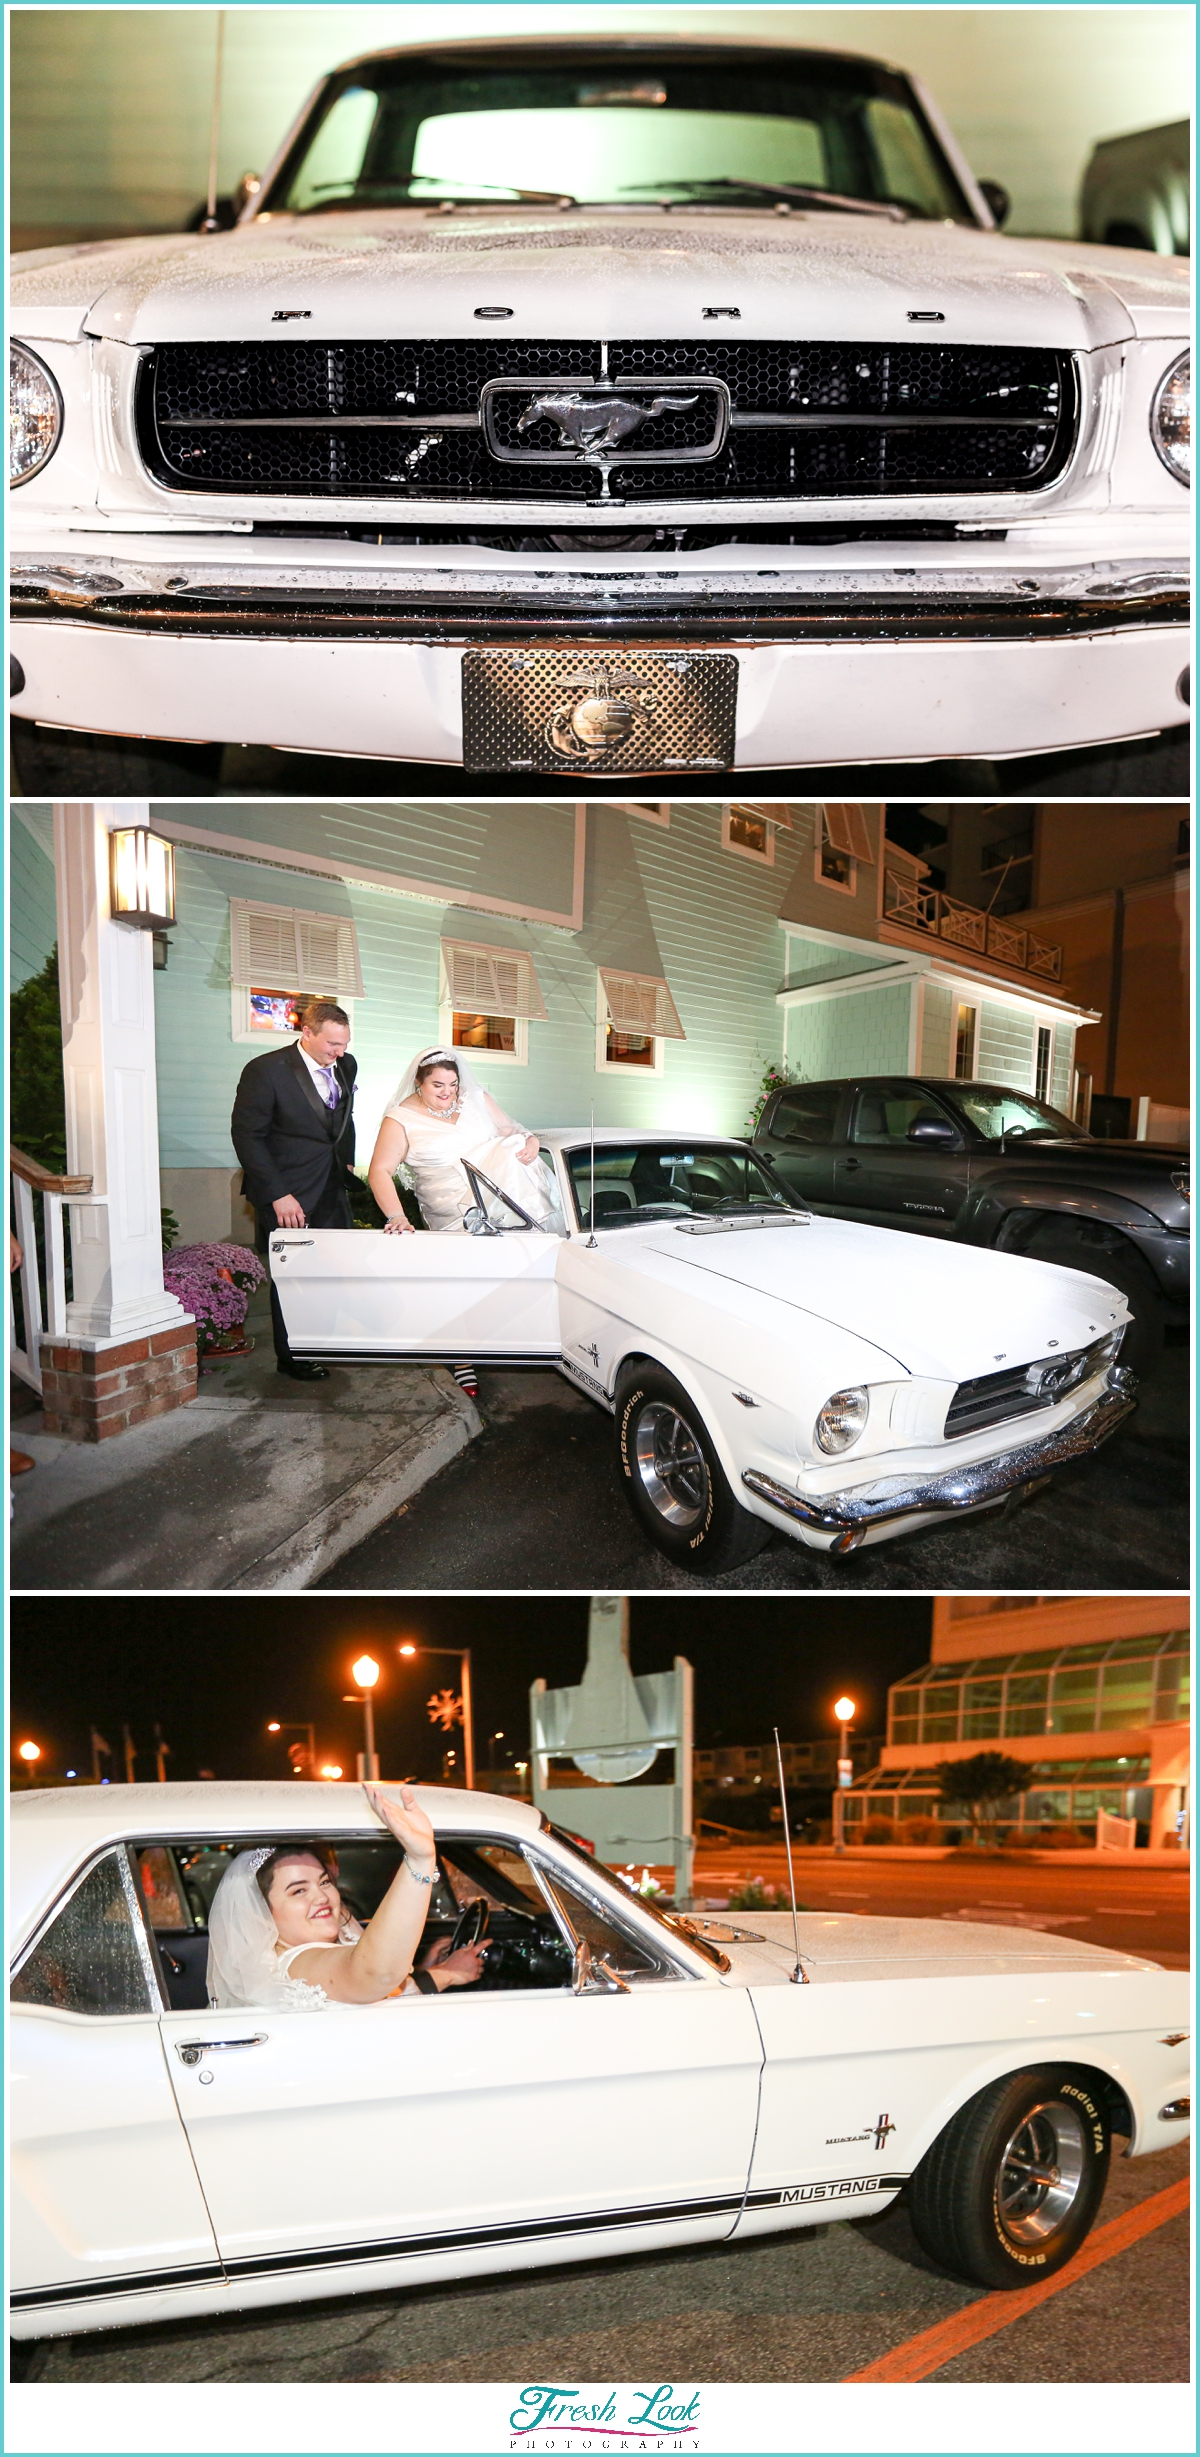 Bride and groom leaving in vintage Mustang